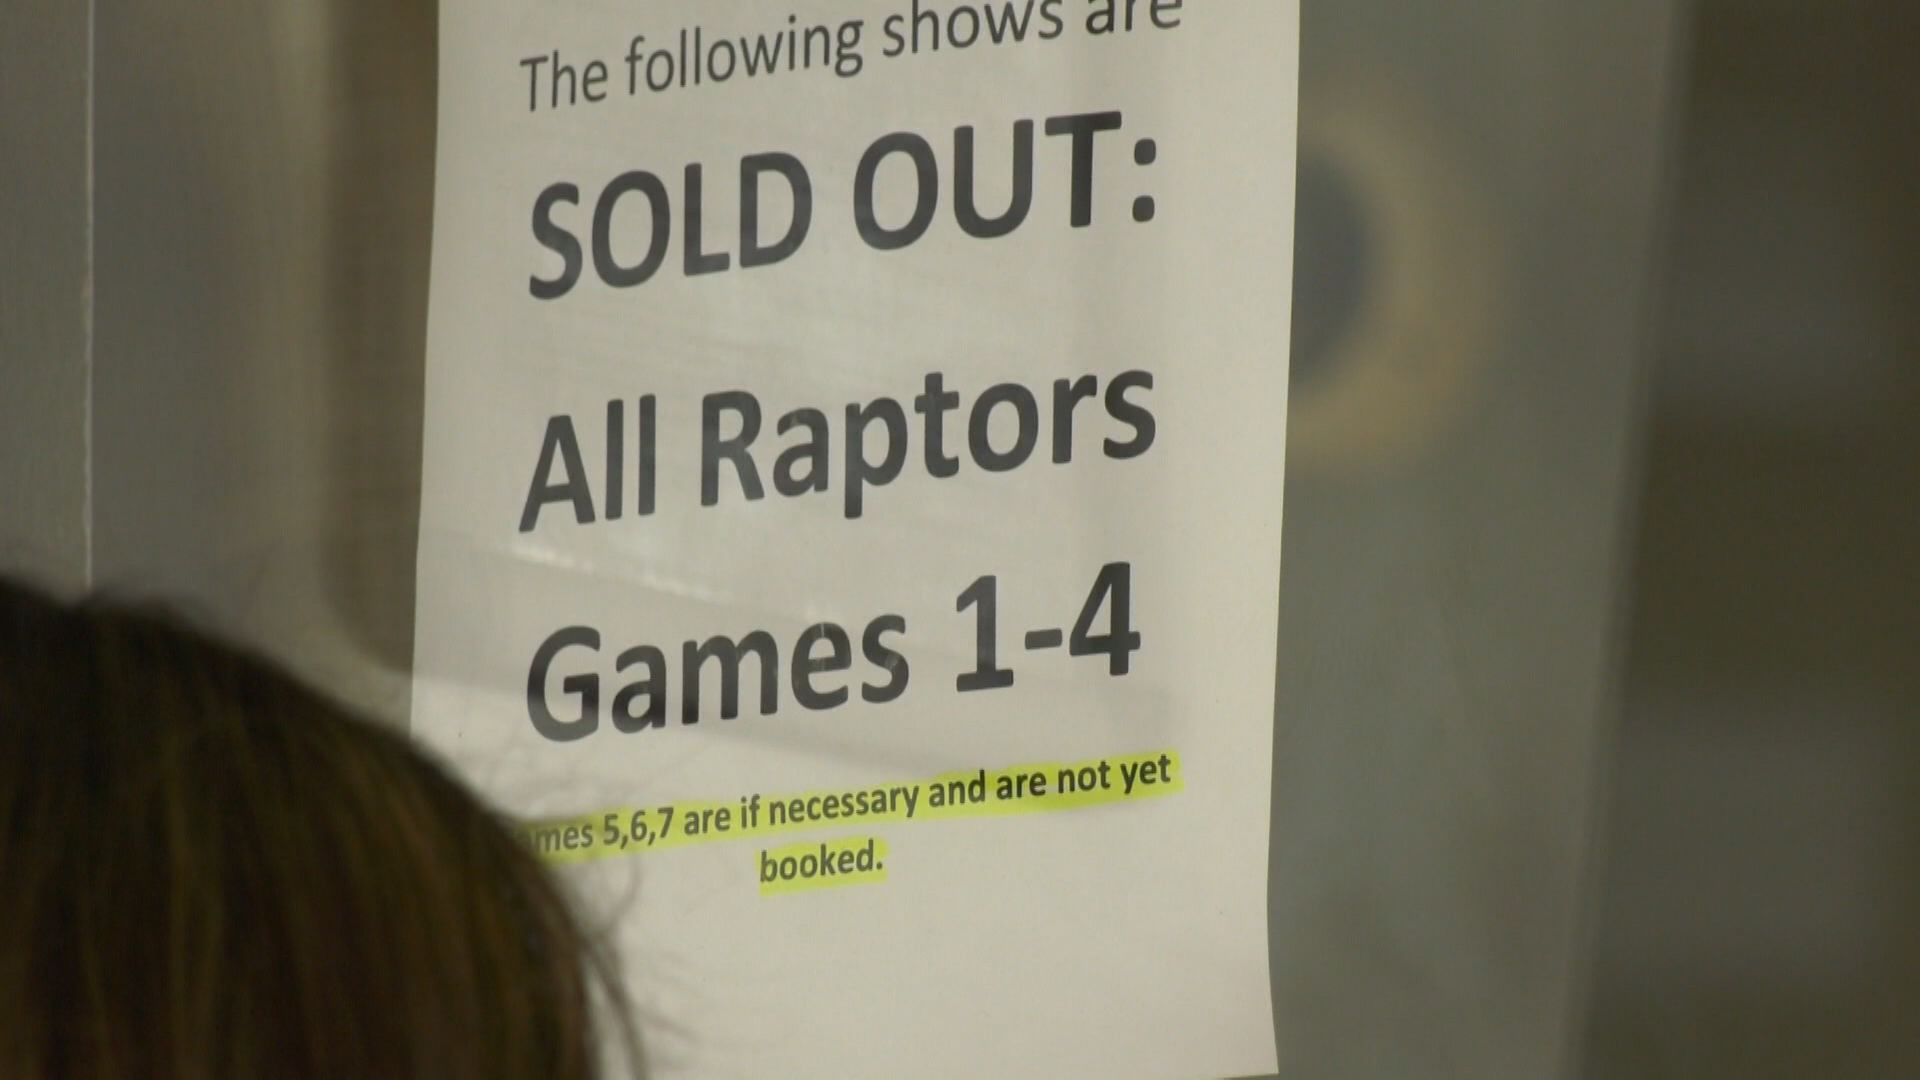 Here's where you can watch the Raptors games in Vancouver